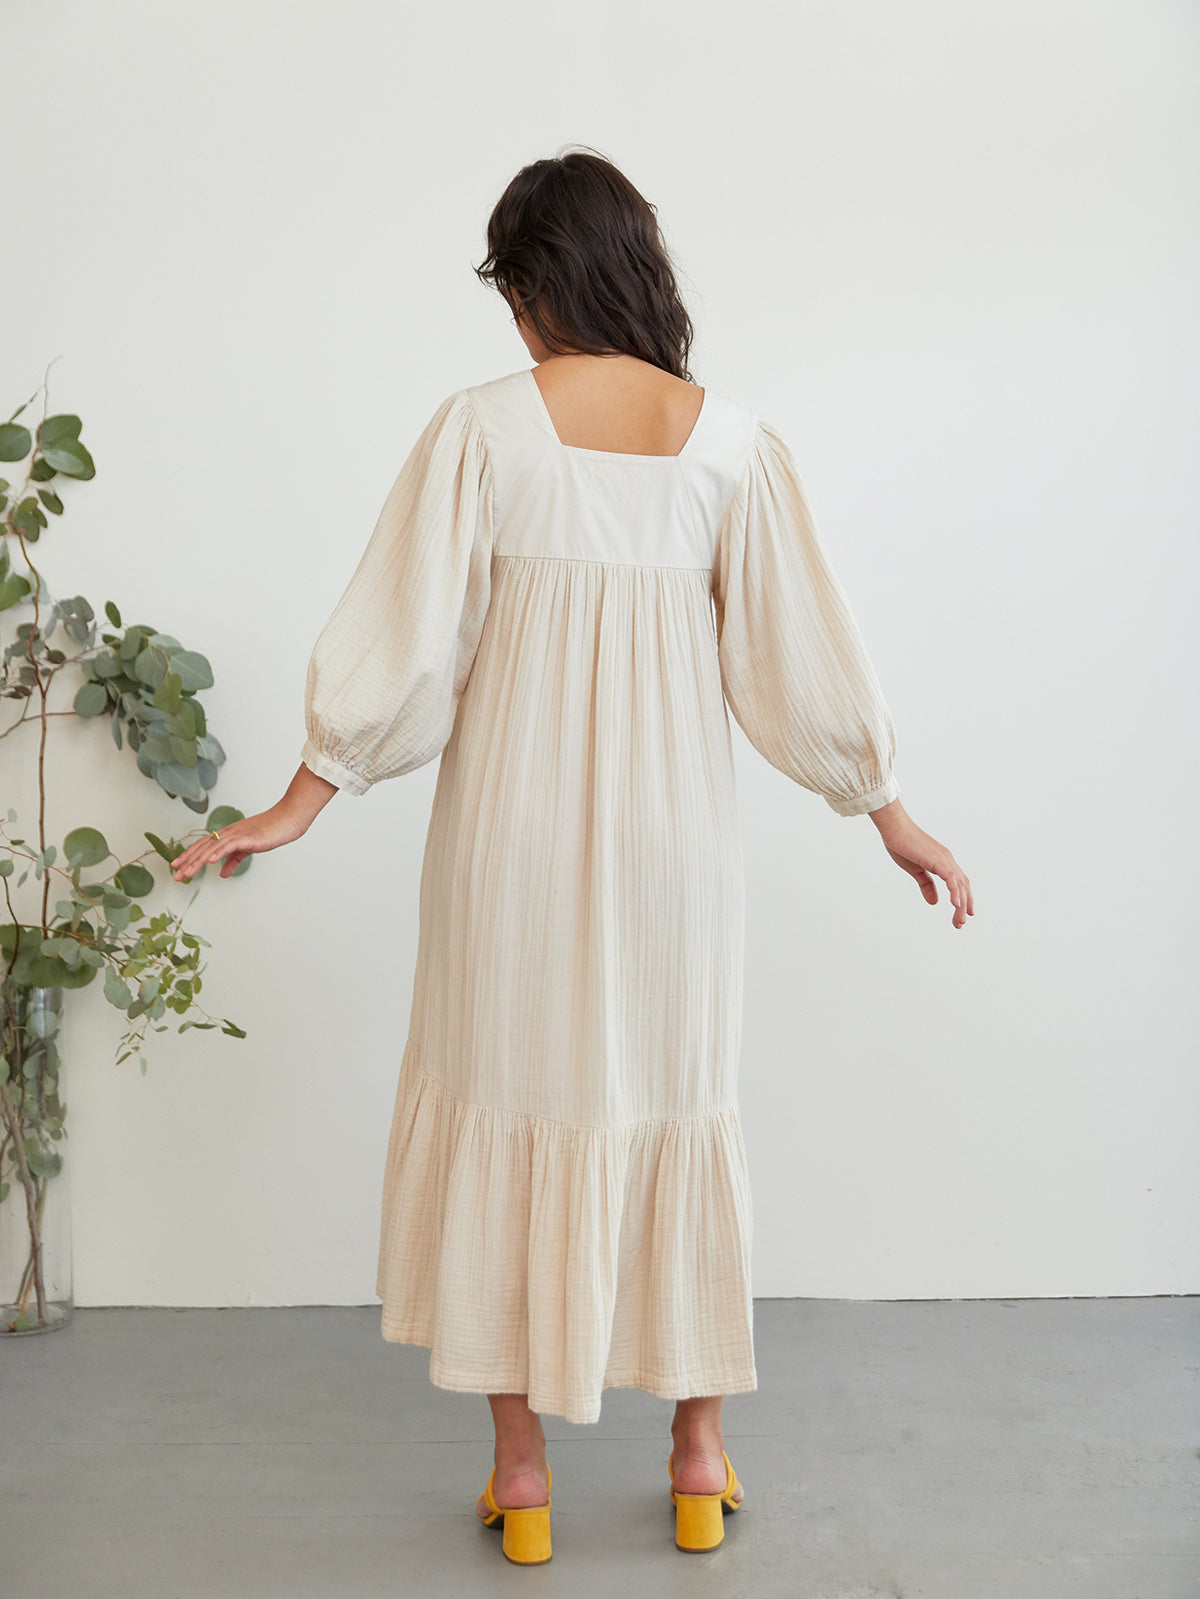 The Nepenthe Dress | DuneDresses - sugarcandymtn.com